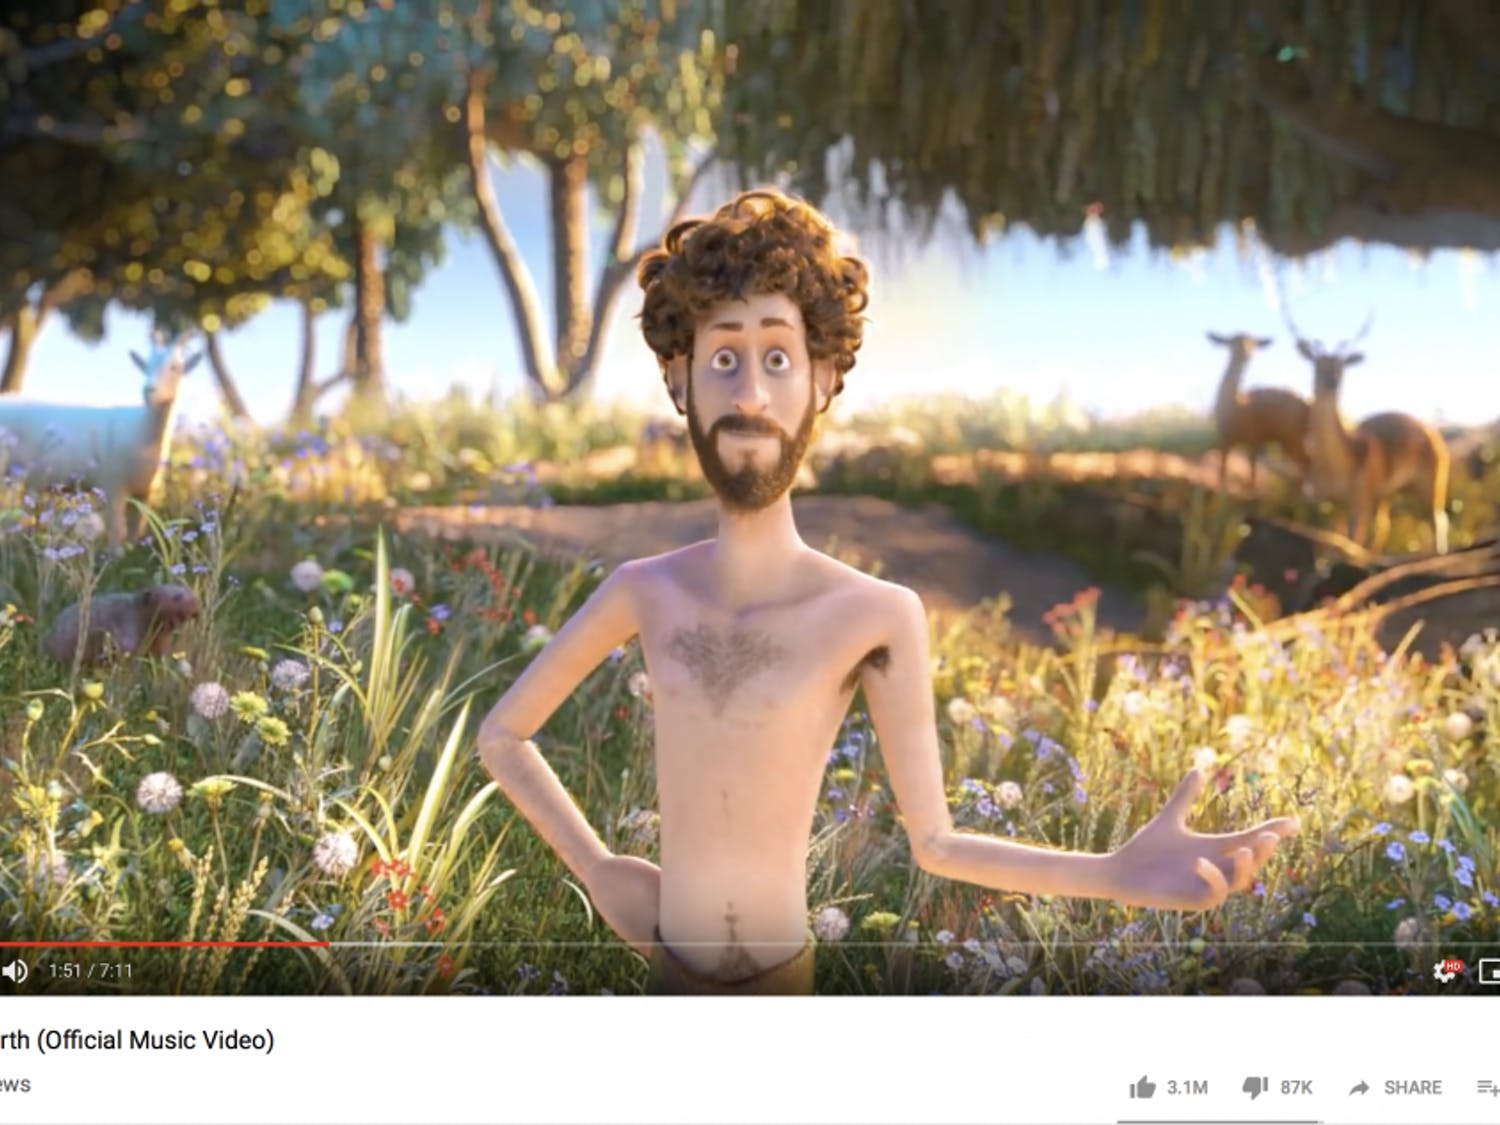 """Lil Dicky's """"Earth"""" music video has more than 34 million views."""